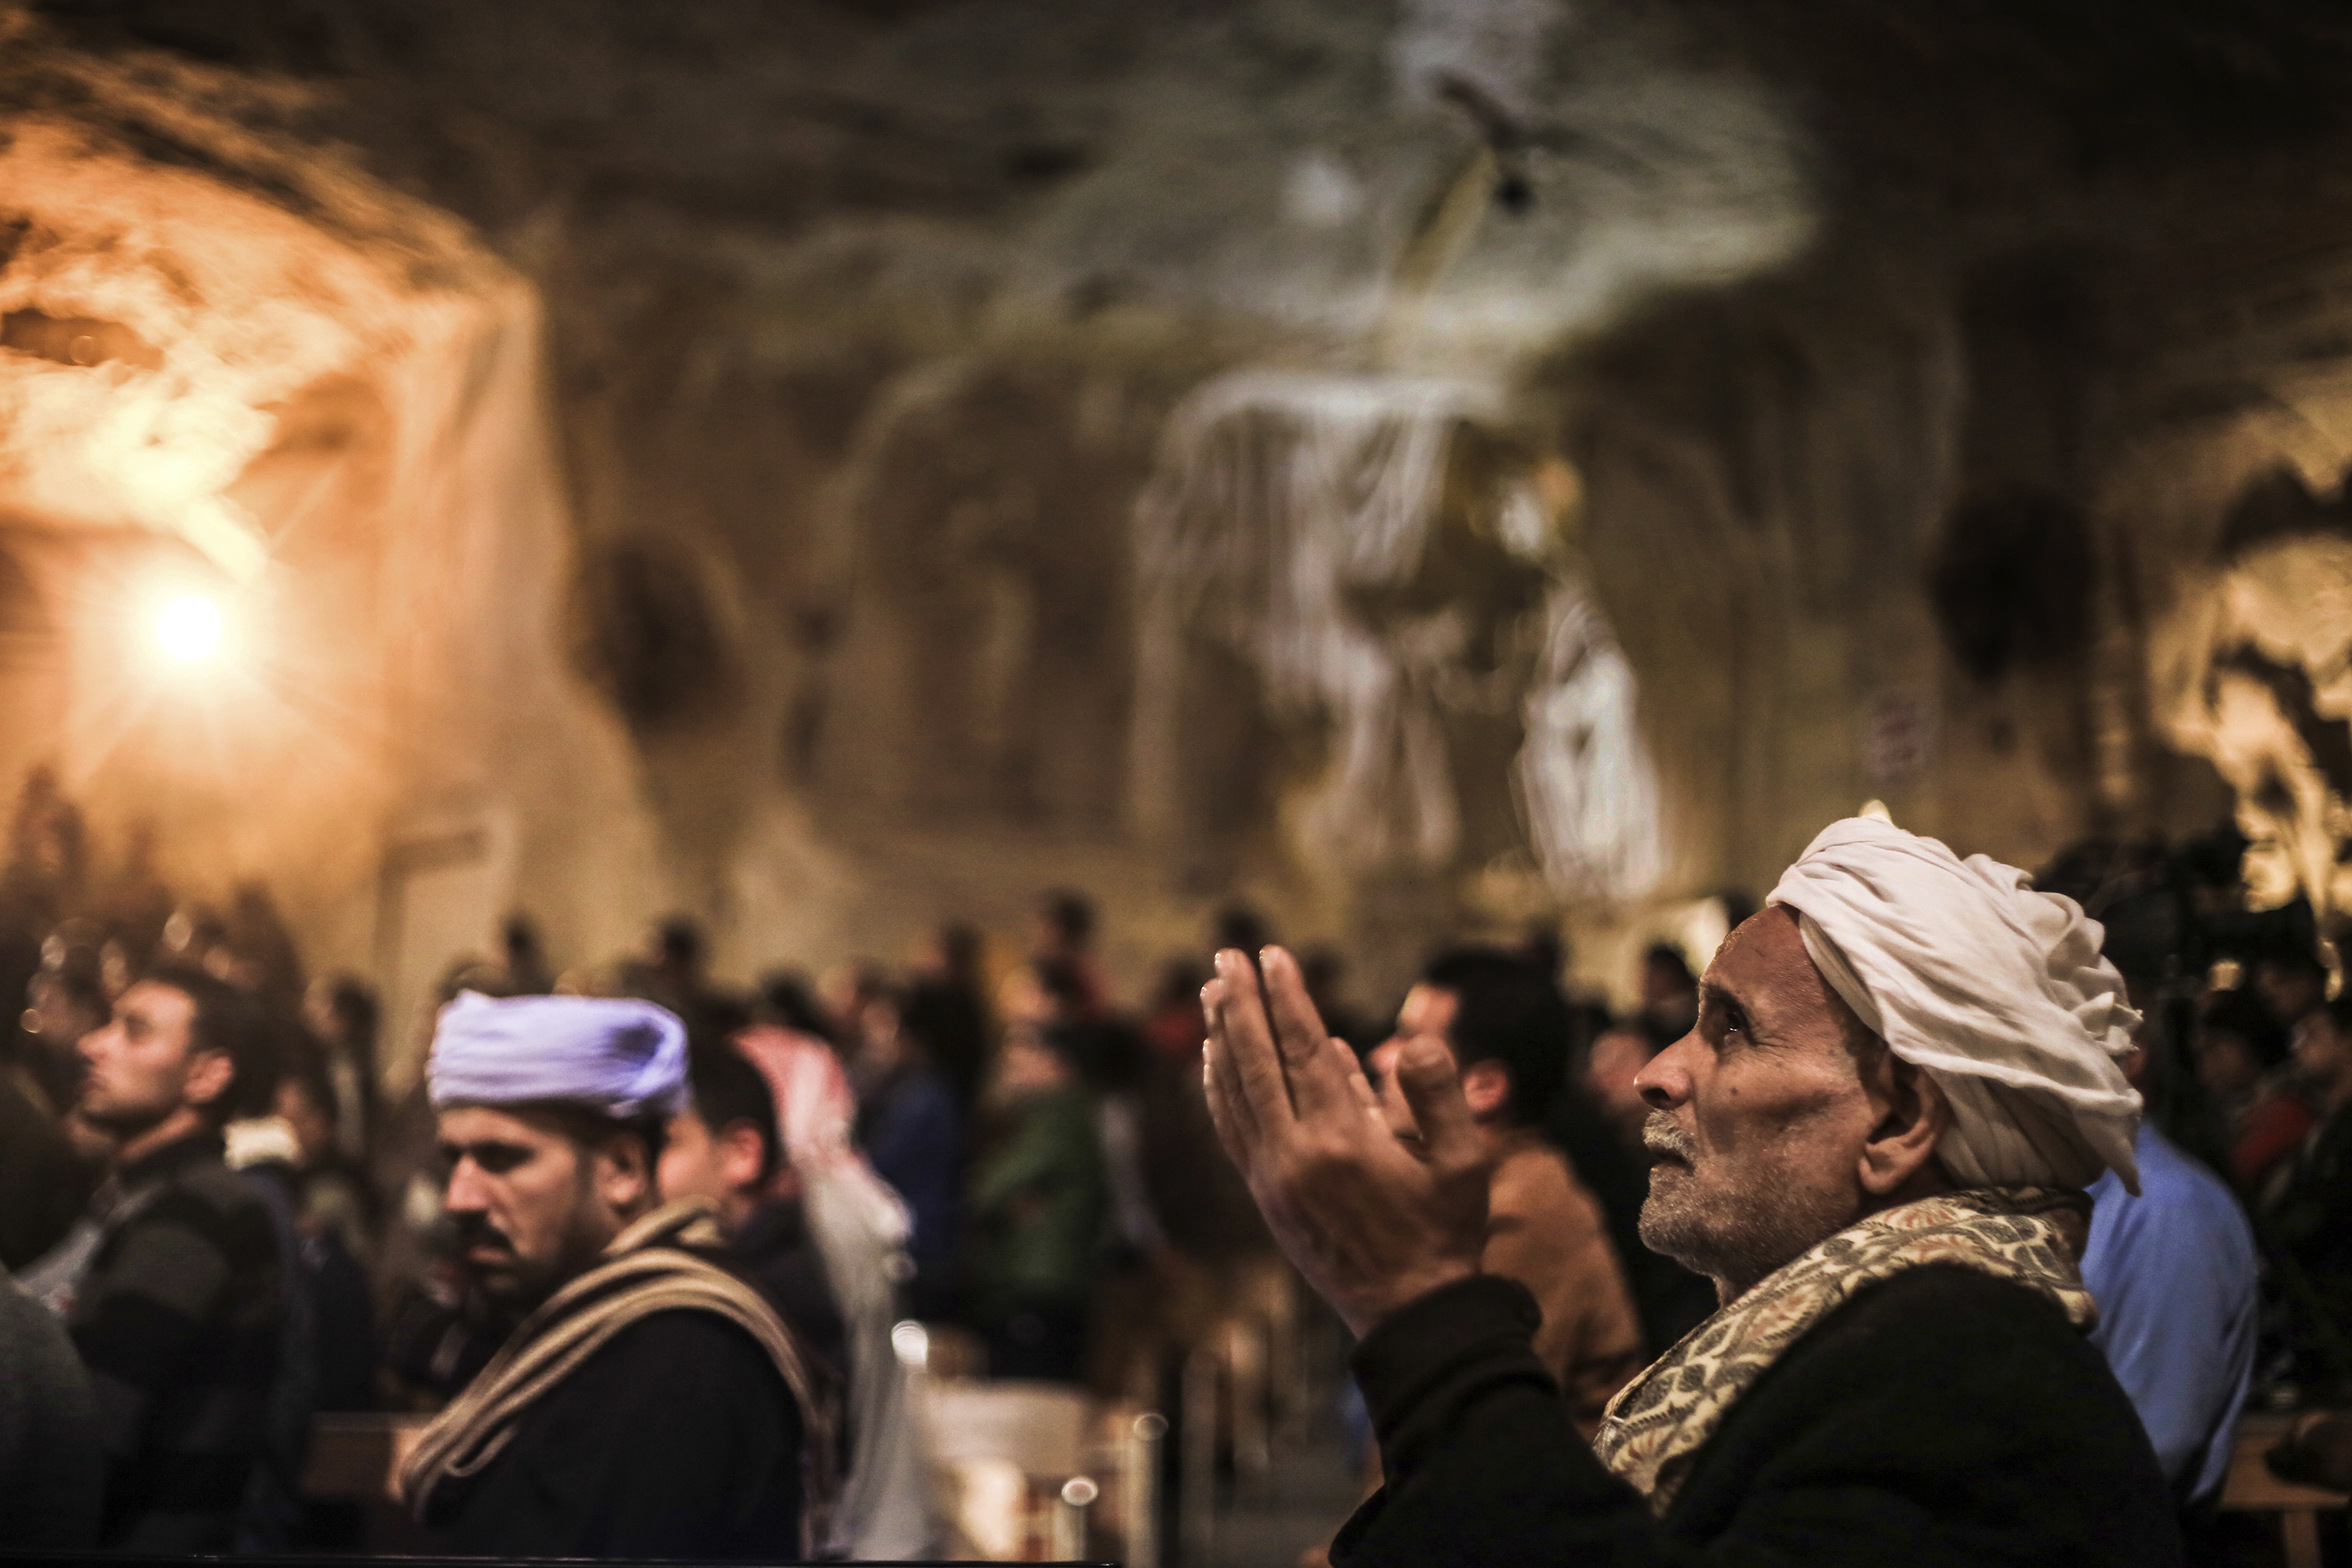 Seeking redemption Worshippers mark the beginning of Lent withMass at St.Samaan Church in Cairo